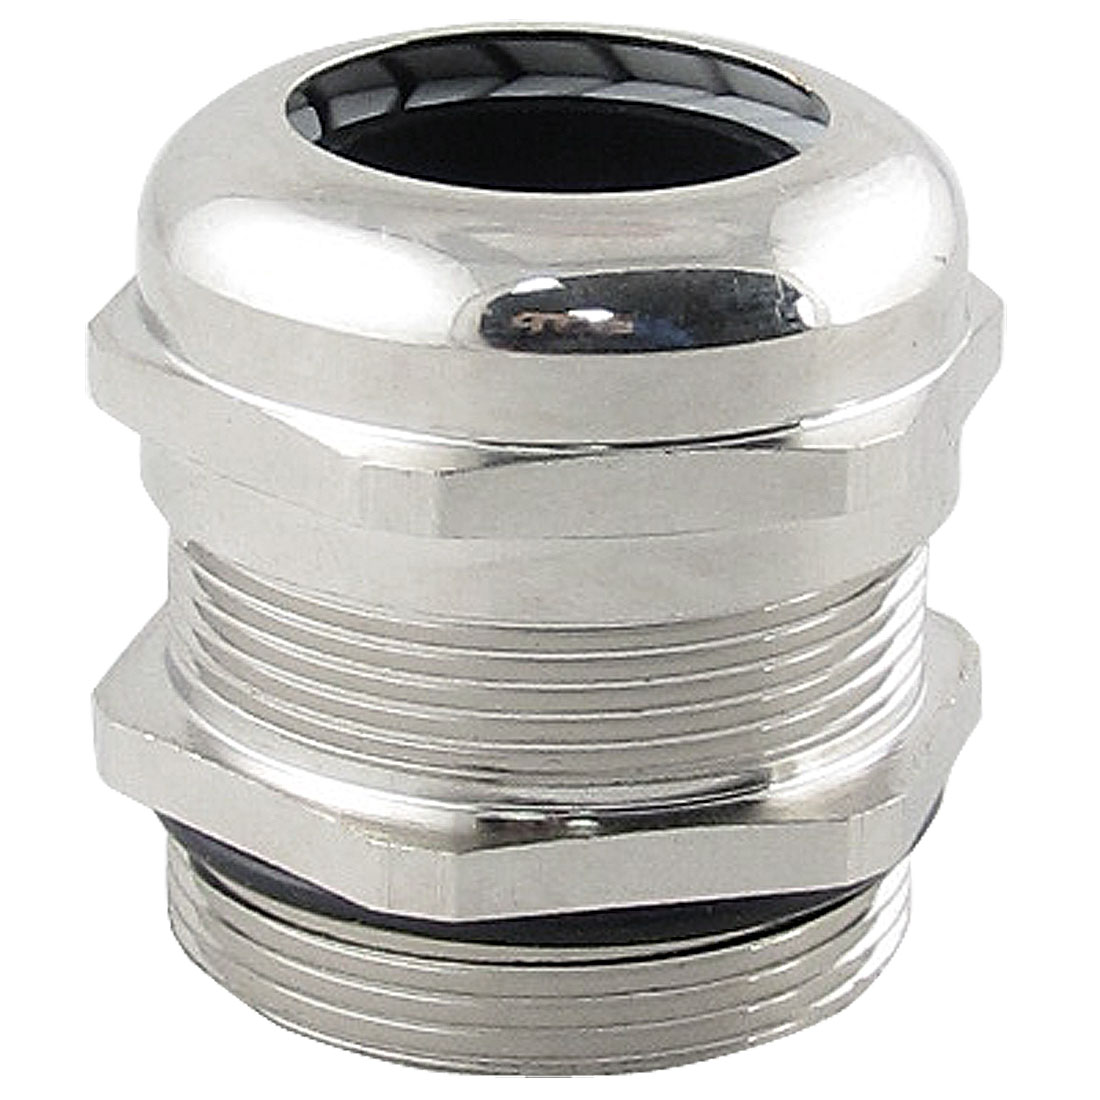 PG29 19.0-23.0mm Range Metal Cable Gland Connector